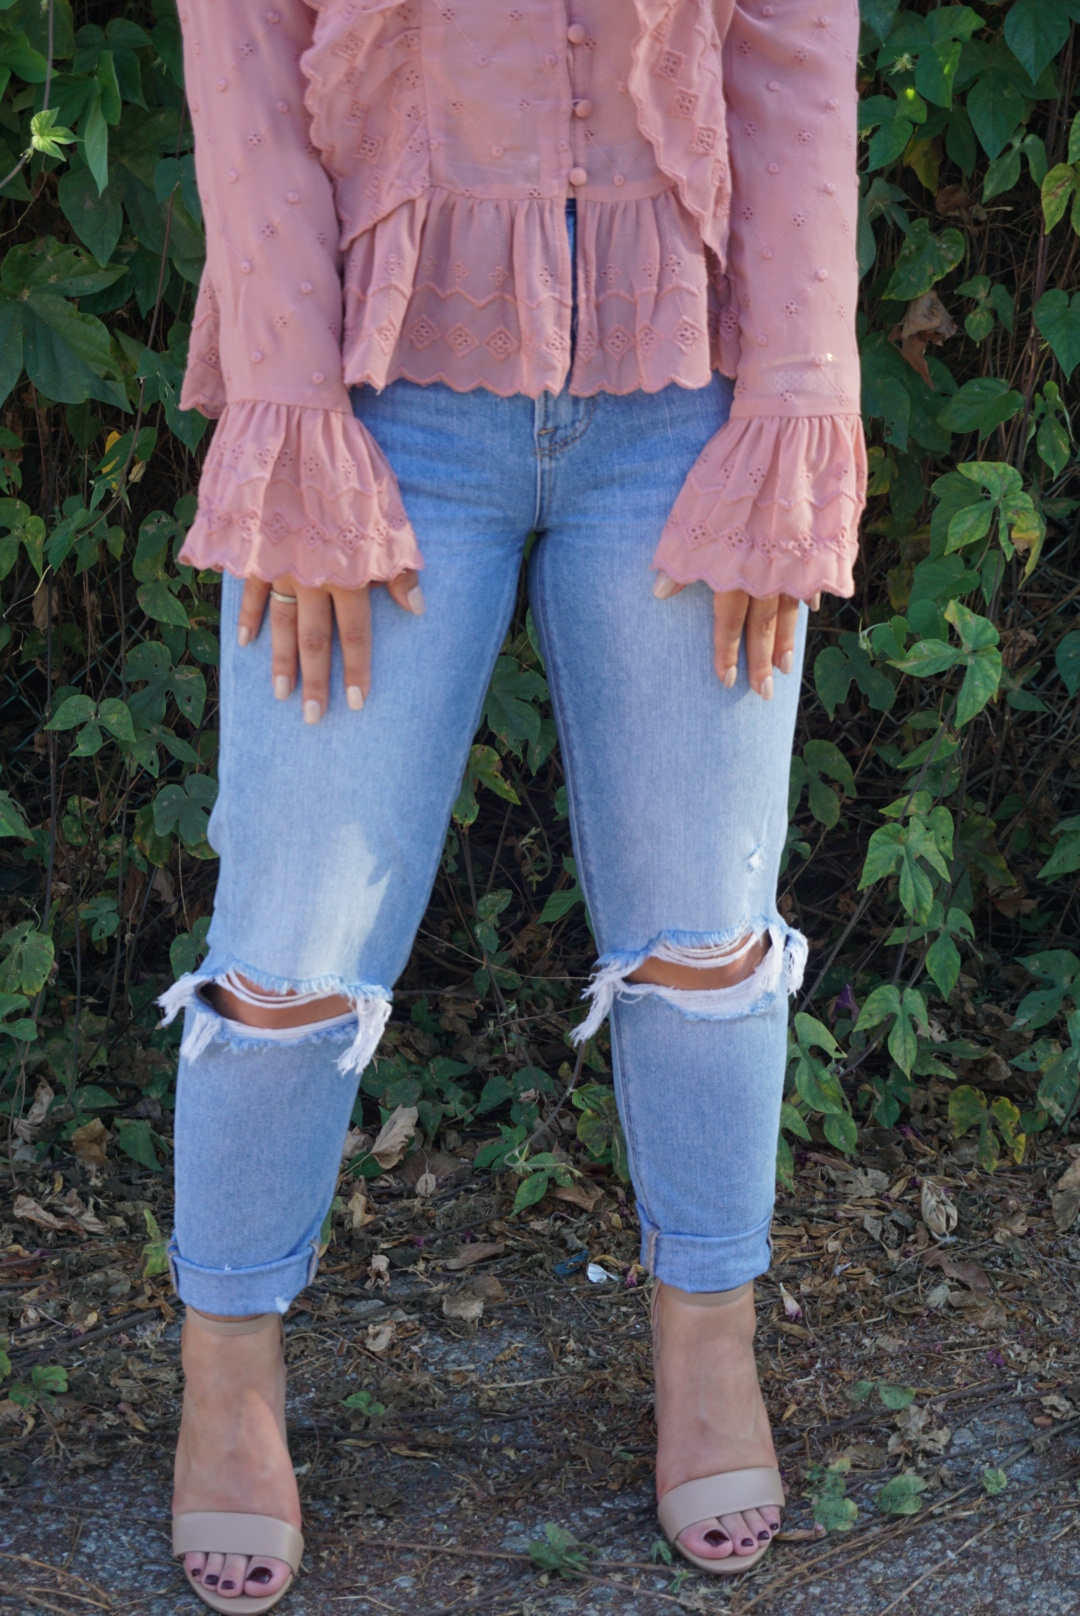 I get lots of compliments and questions about these jeans. They are from American Eagle and I love them!